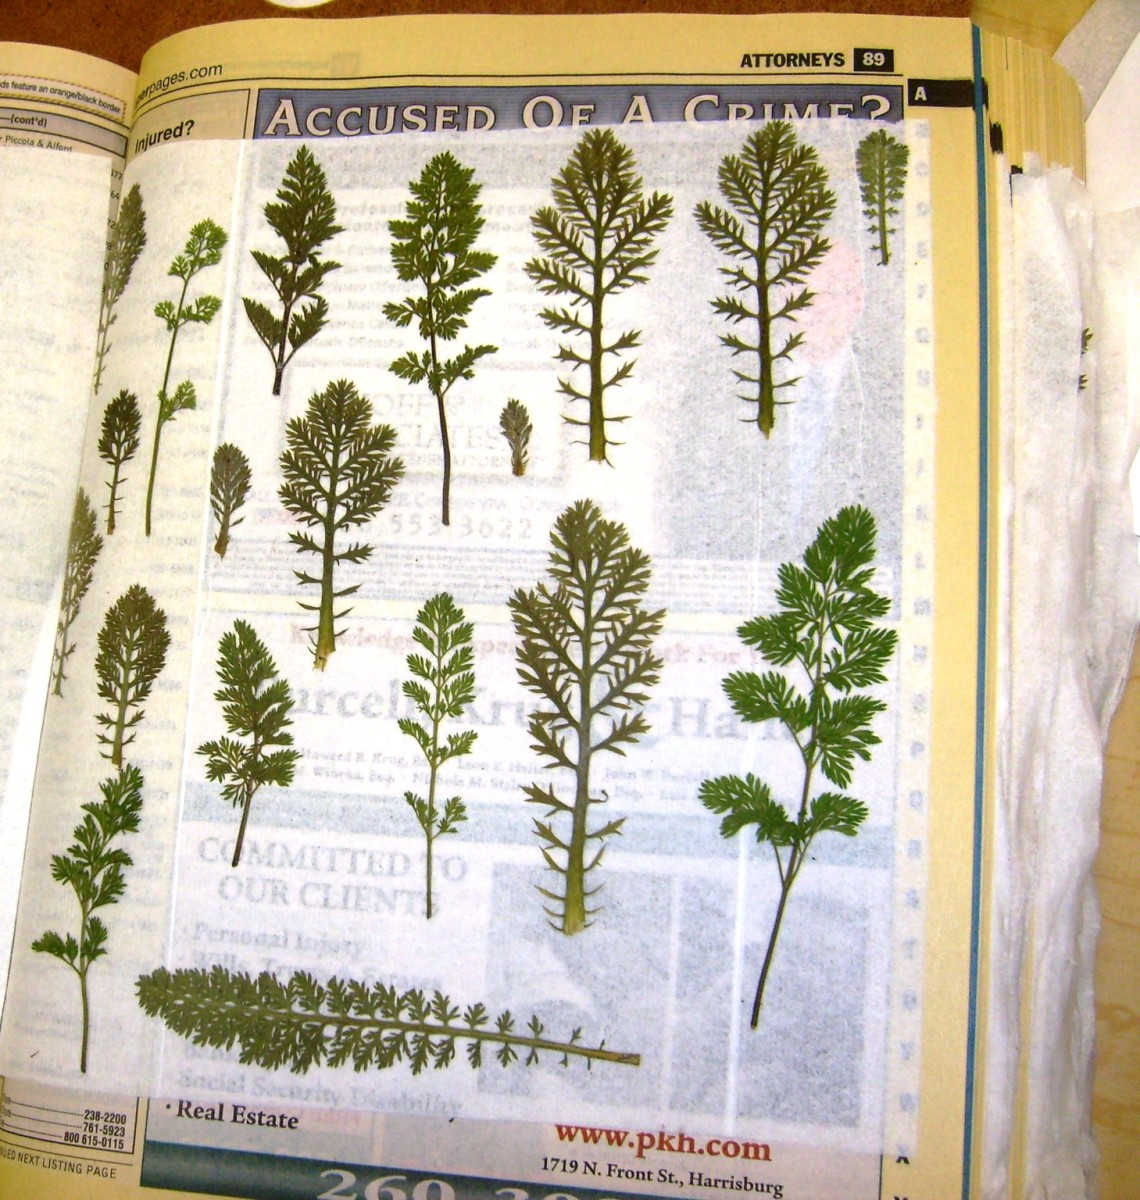 After 2-3 weeks, carefully remove tissue to reveal pressed leaves.  You can see these could be used to represent trees.